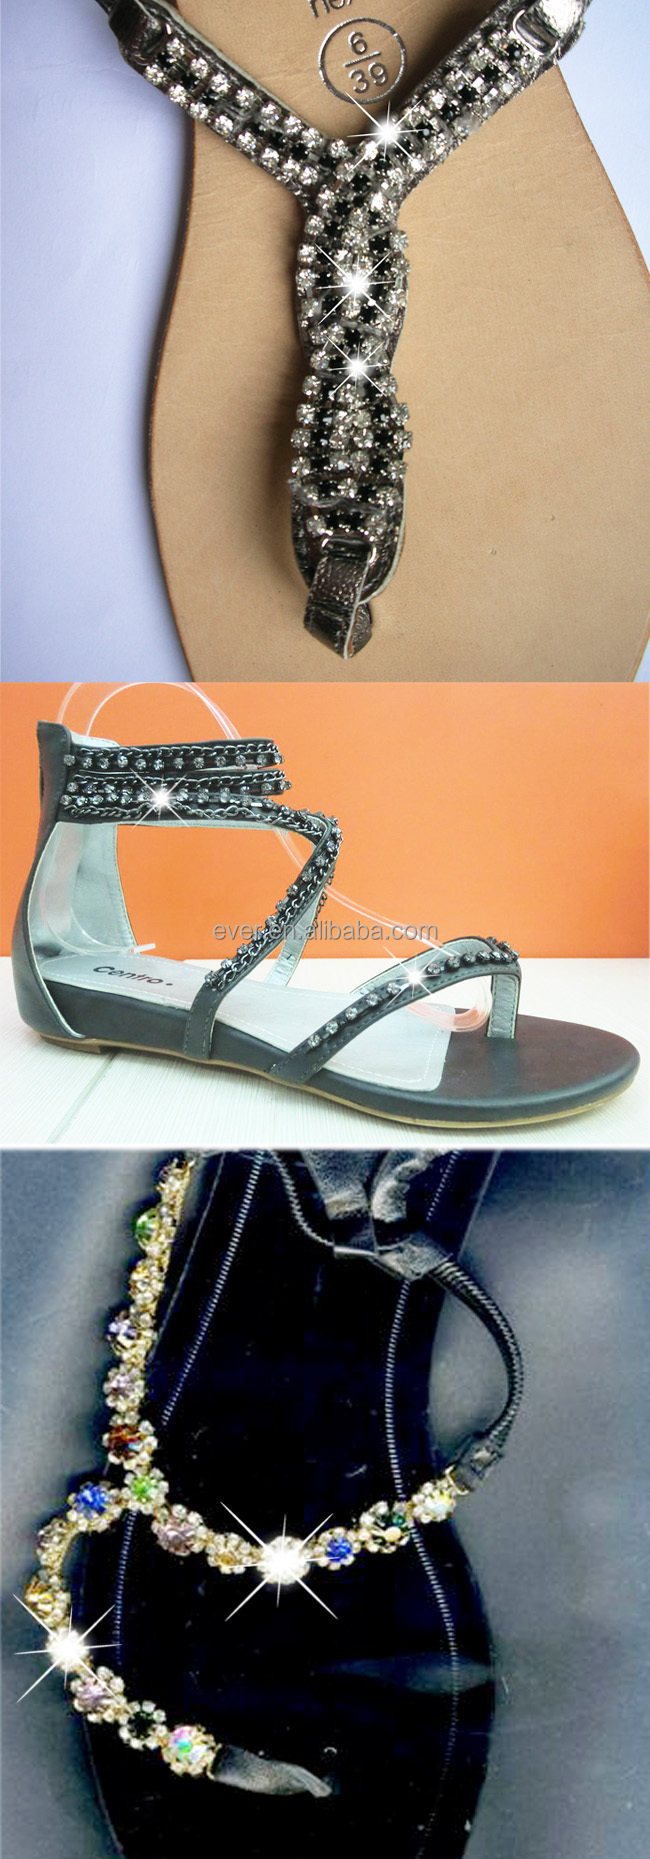 new arrival fashion rhinestone shoe chain